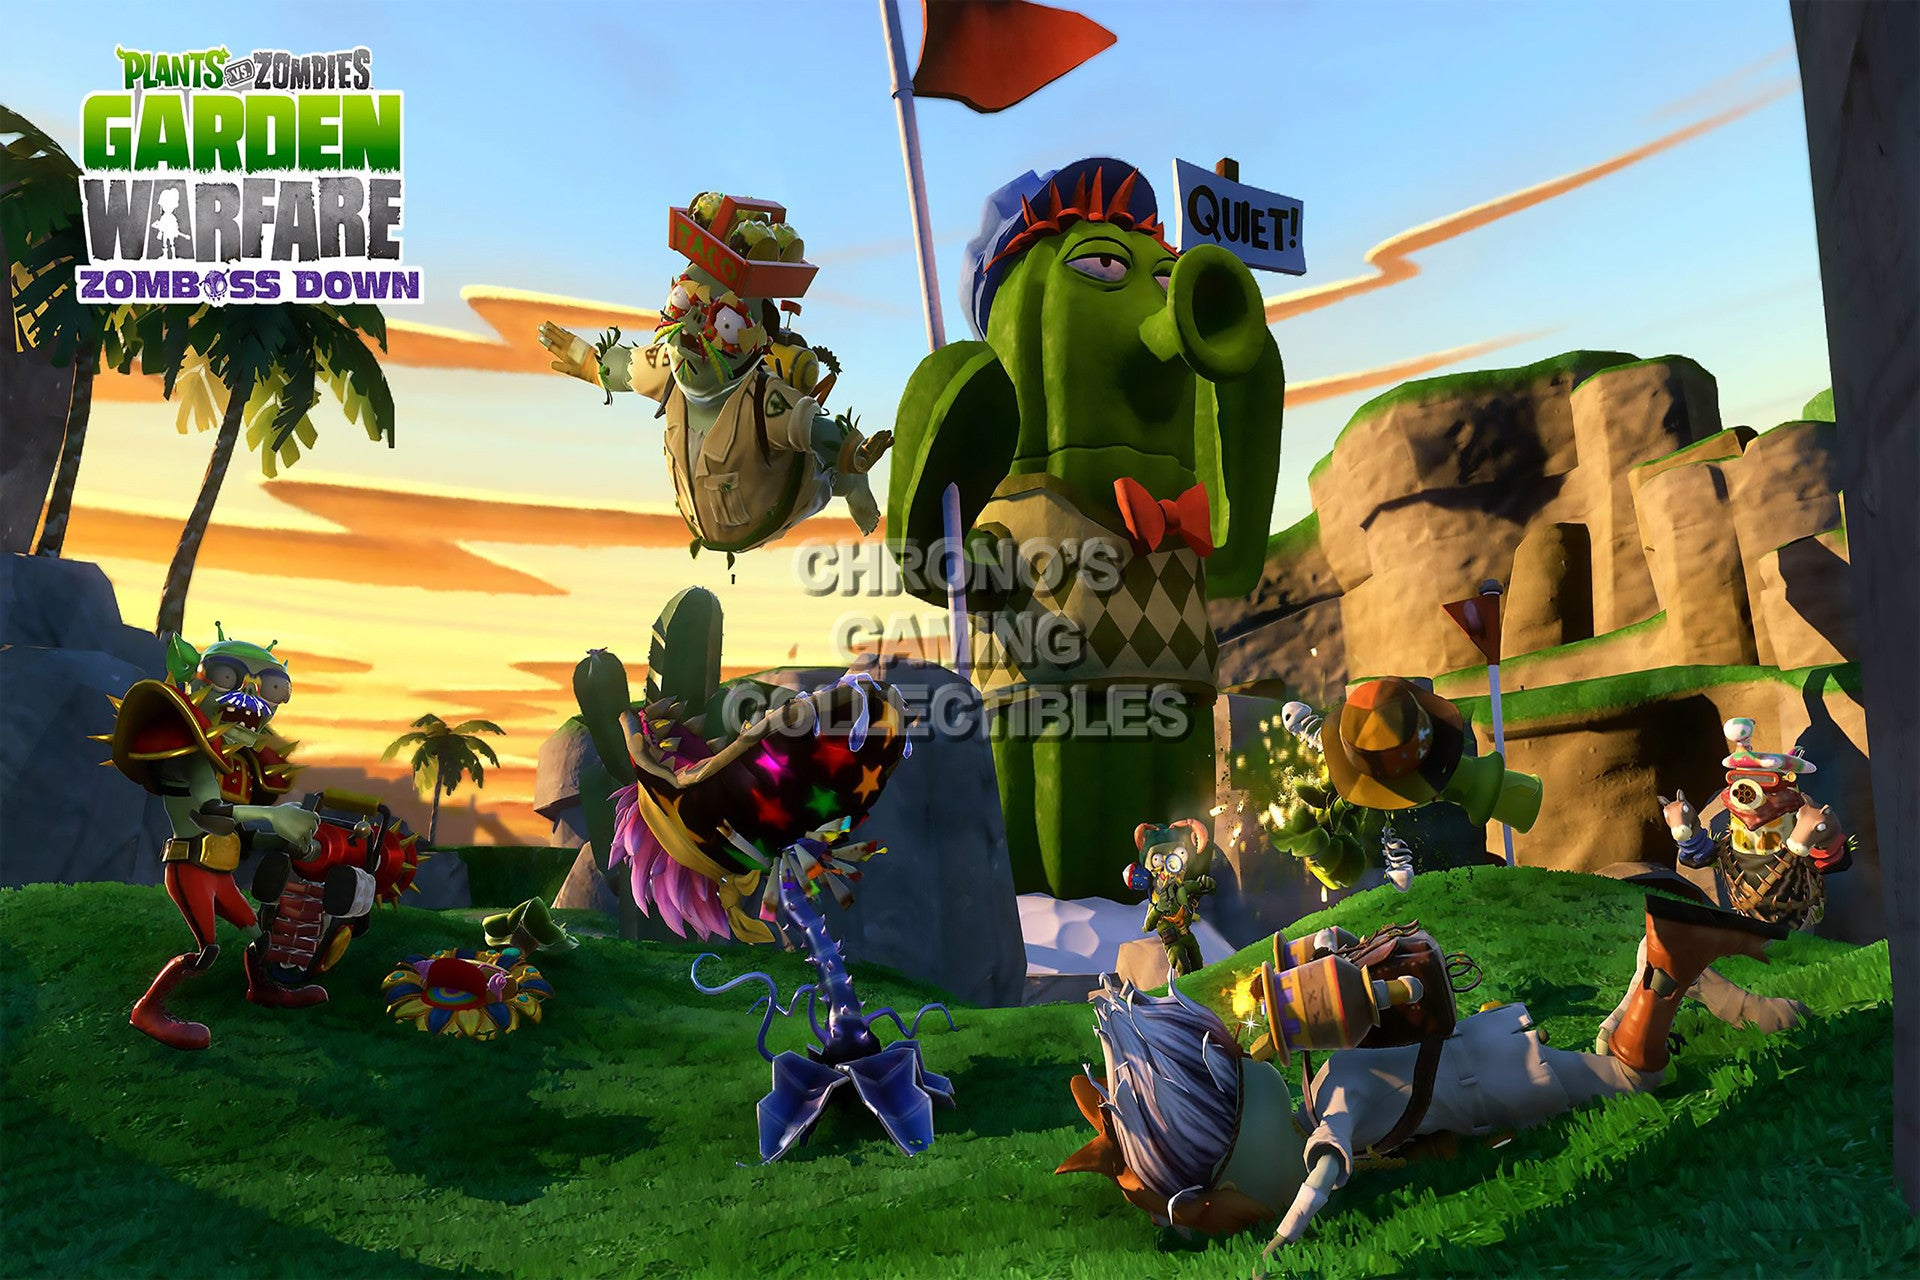 Amazing Plants Vs Zombies Garden Warfare Poster